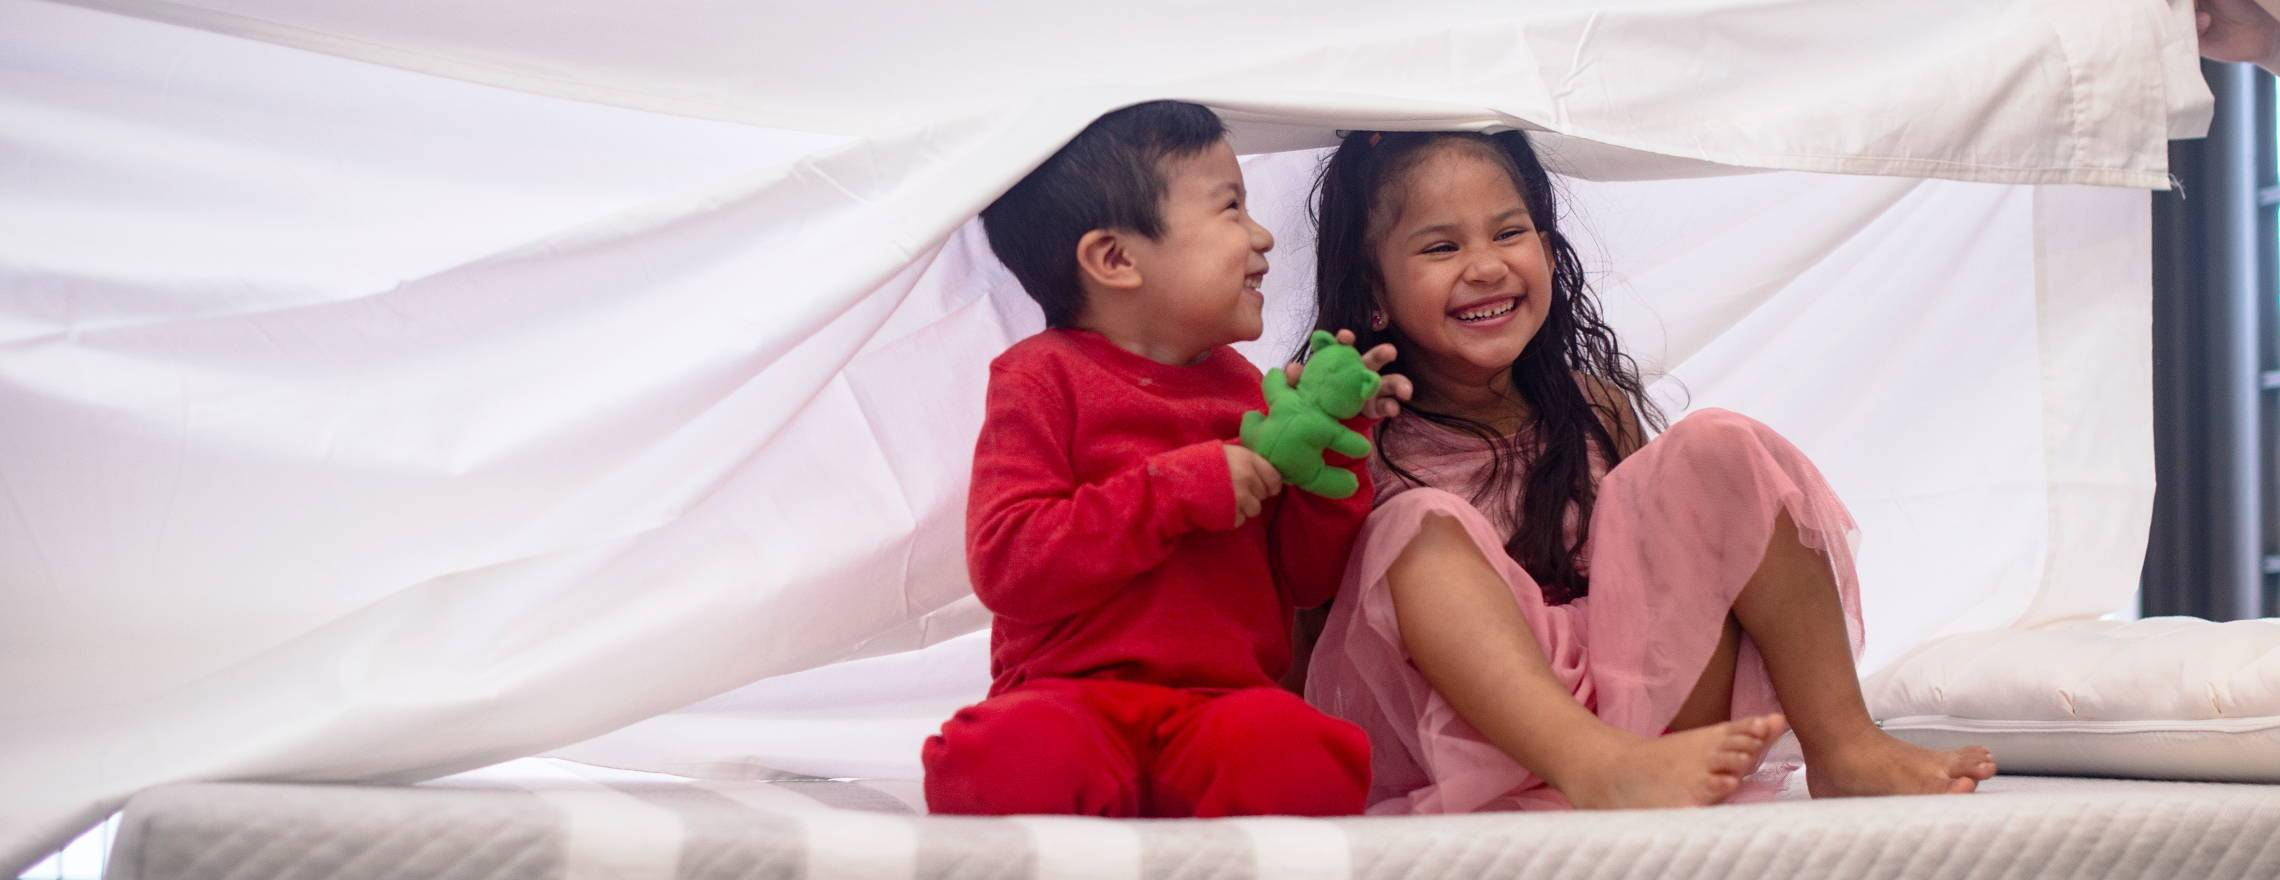 childern_playing_under_the_covers_on_a_leesa_mattress